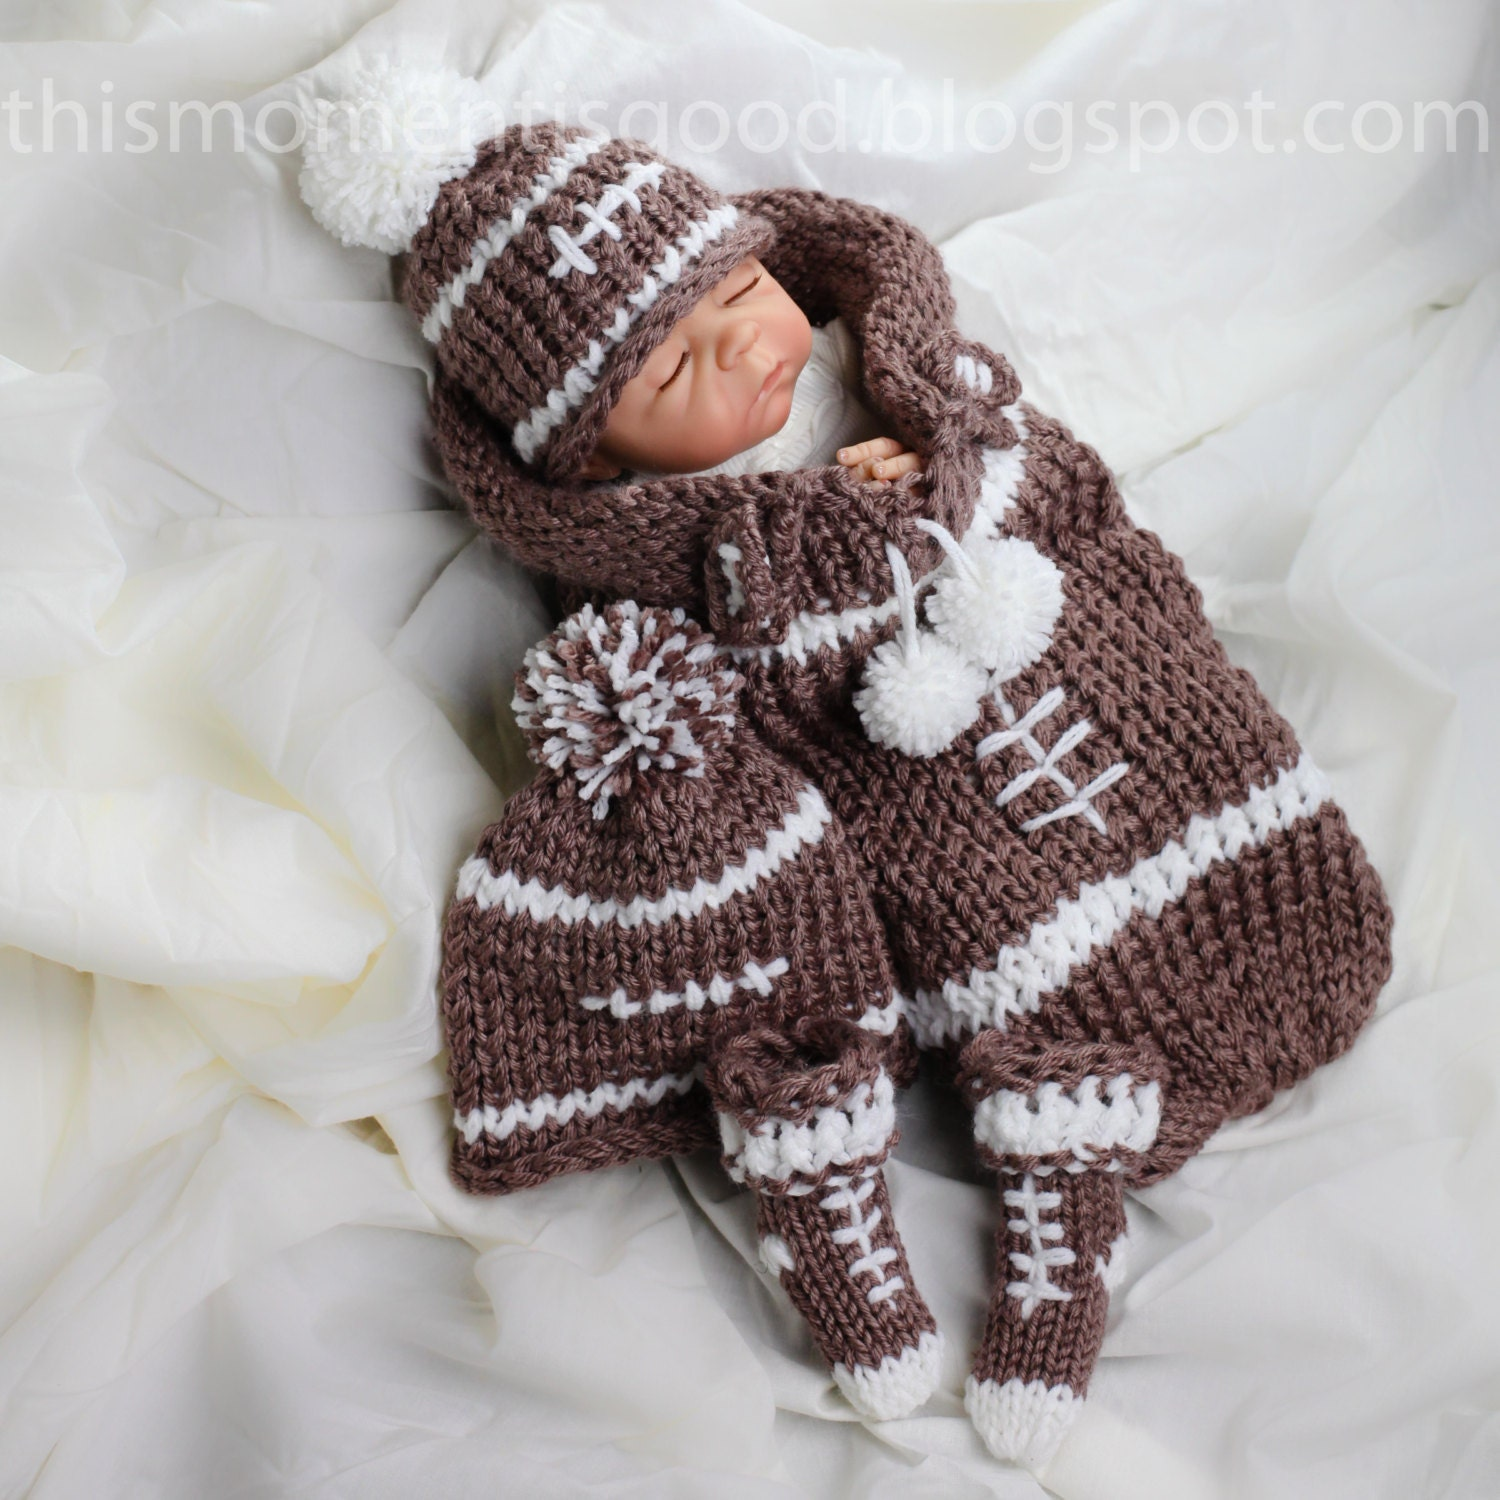 how to knit a baby hat on loom knitting